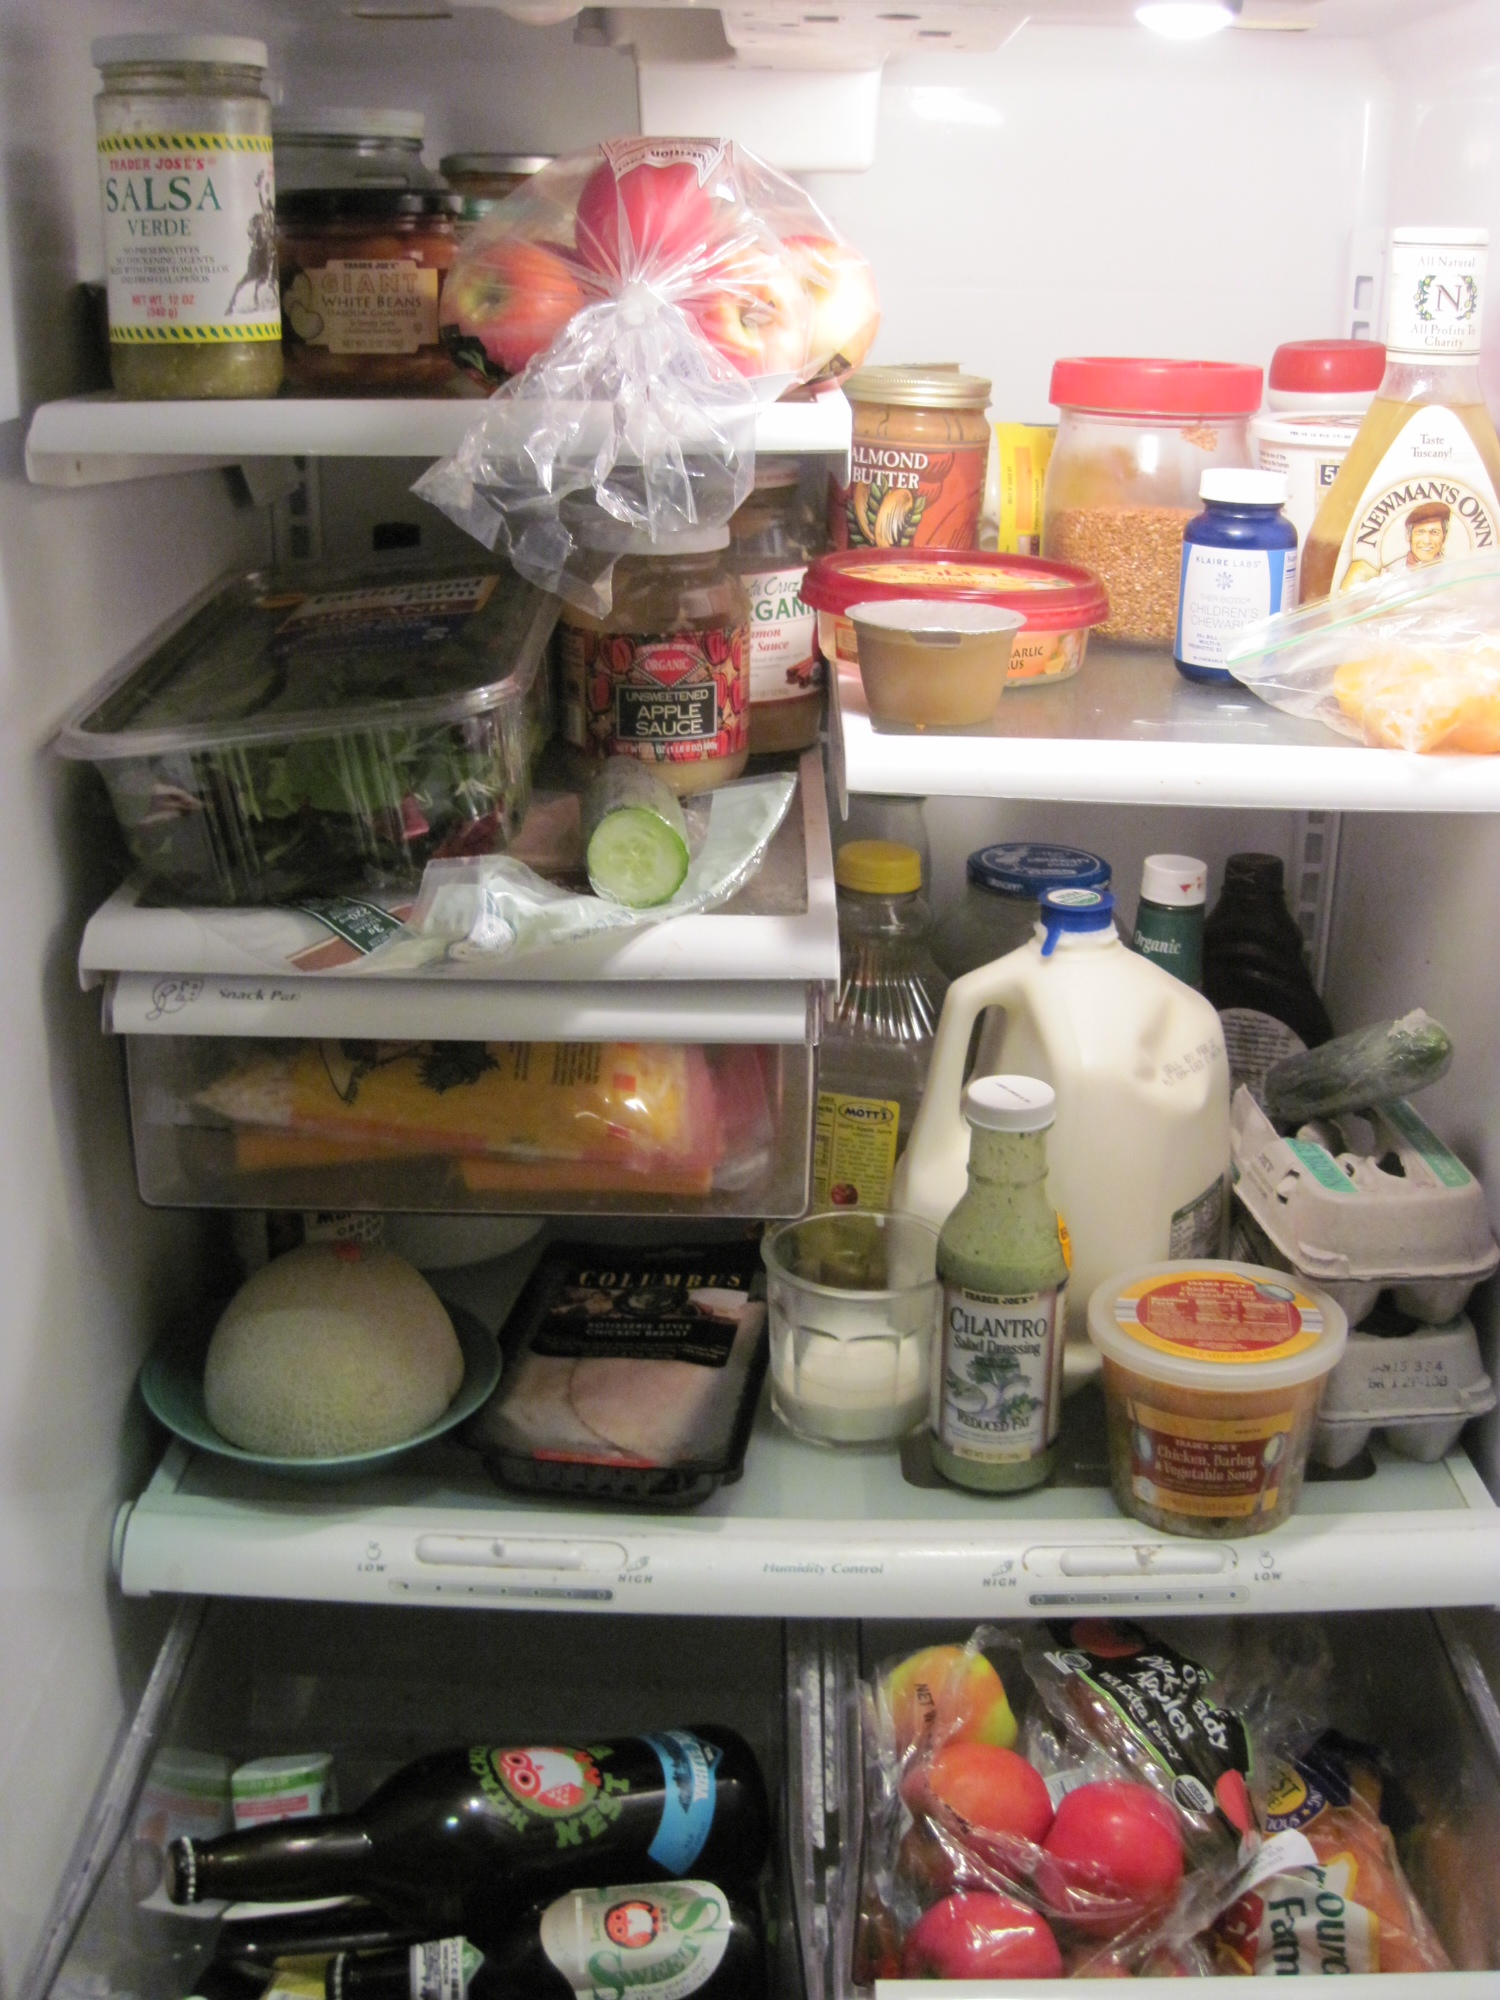 a close up of a well stocked fridge